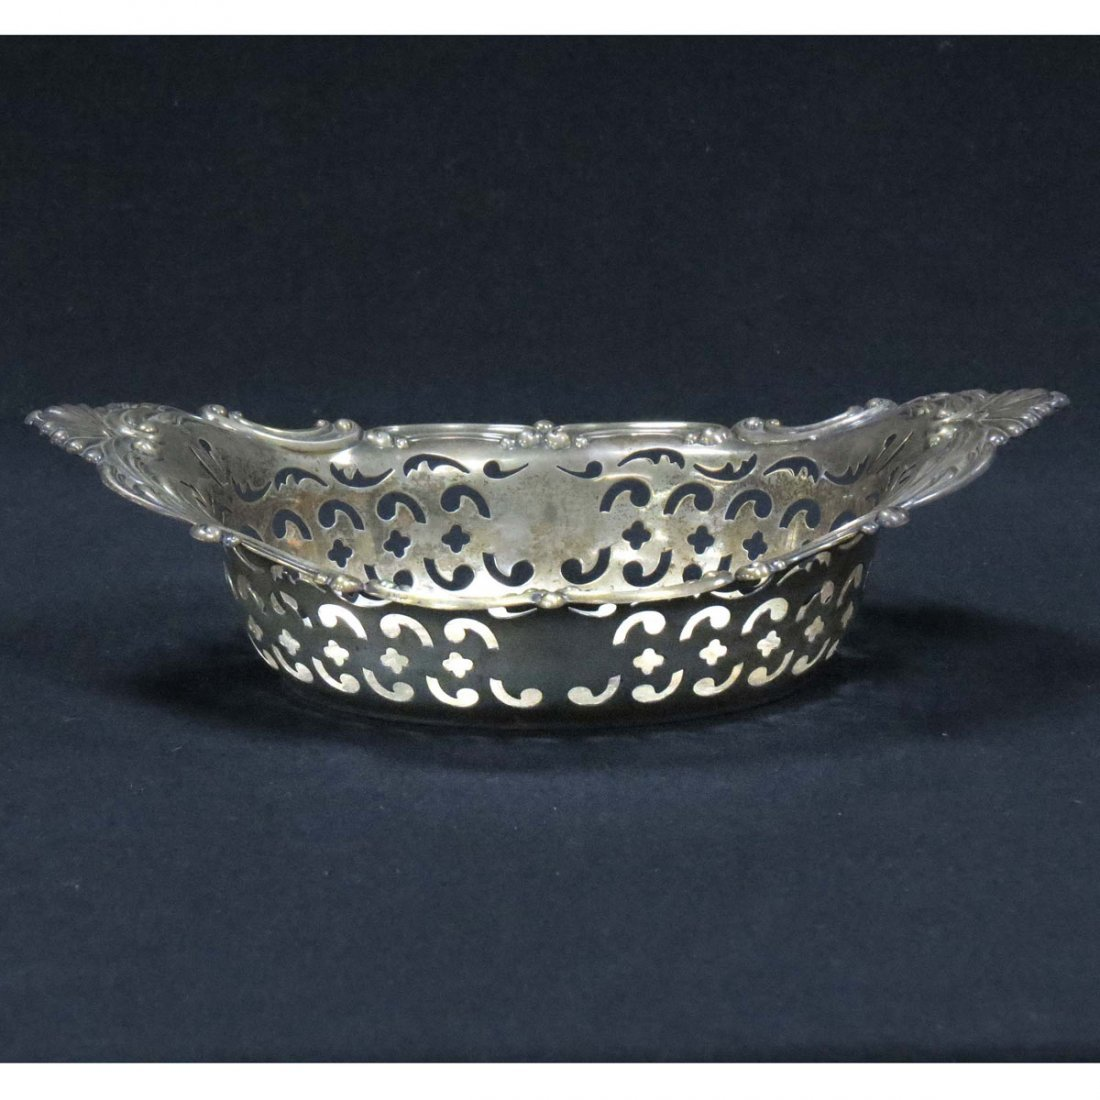 GORHAM STERLING RETICULATED OVAL DISH, MONOGRAMMED